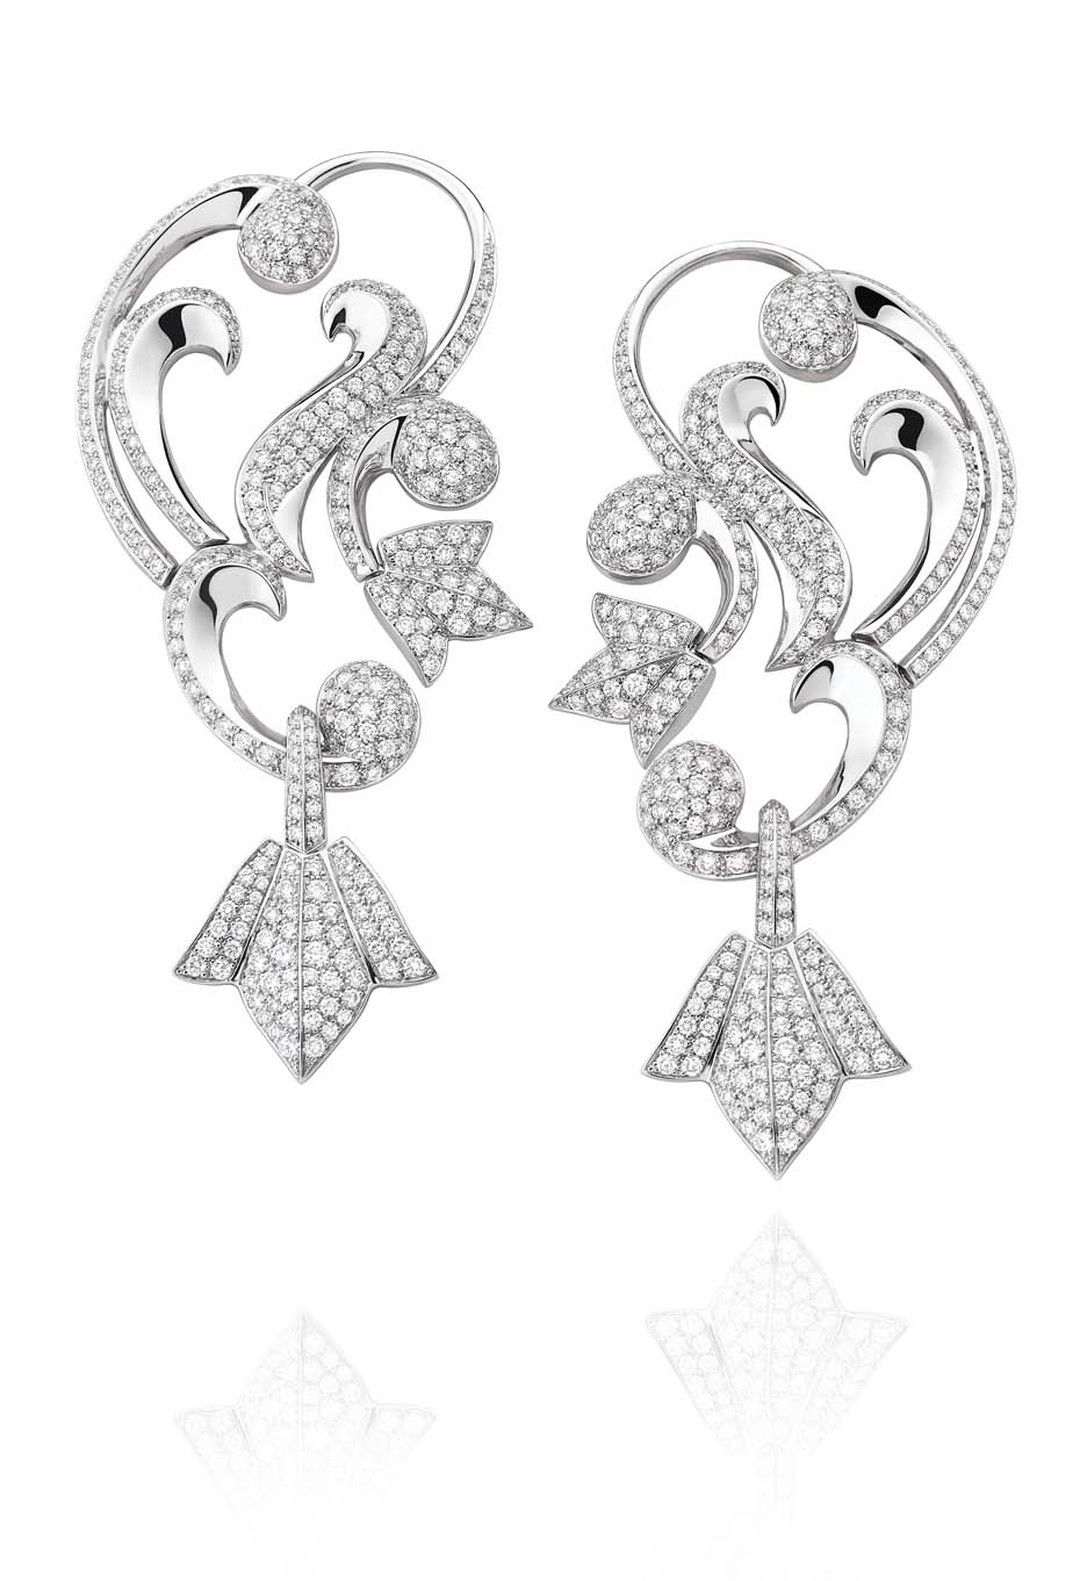 Mellerio dits Meller Secrets de Lys collection diamond ear cuffs in platinum, with swirling arabesques and lily motifs.